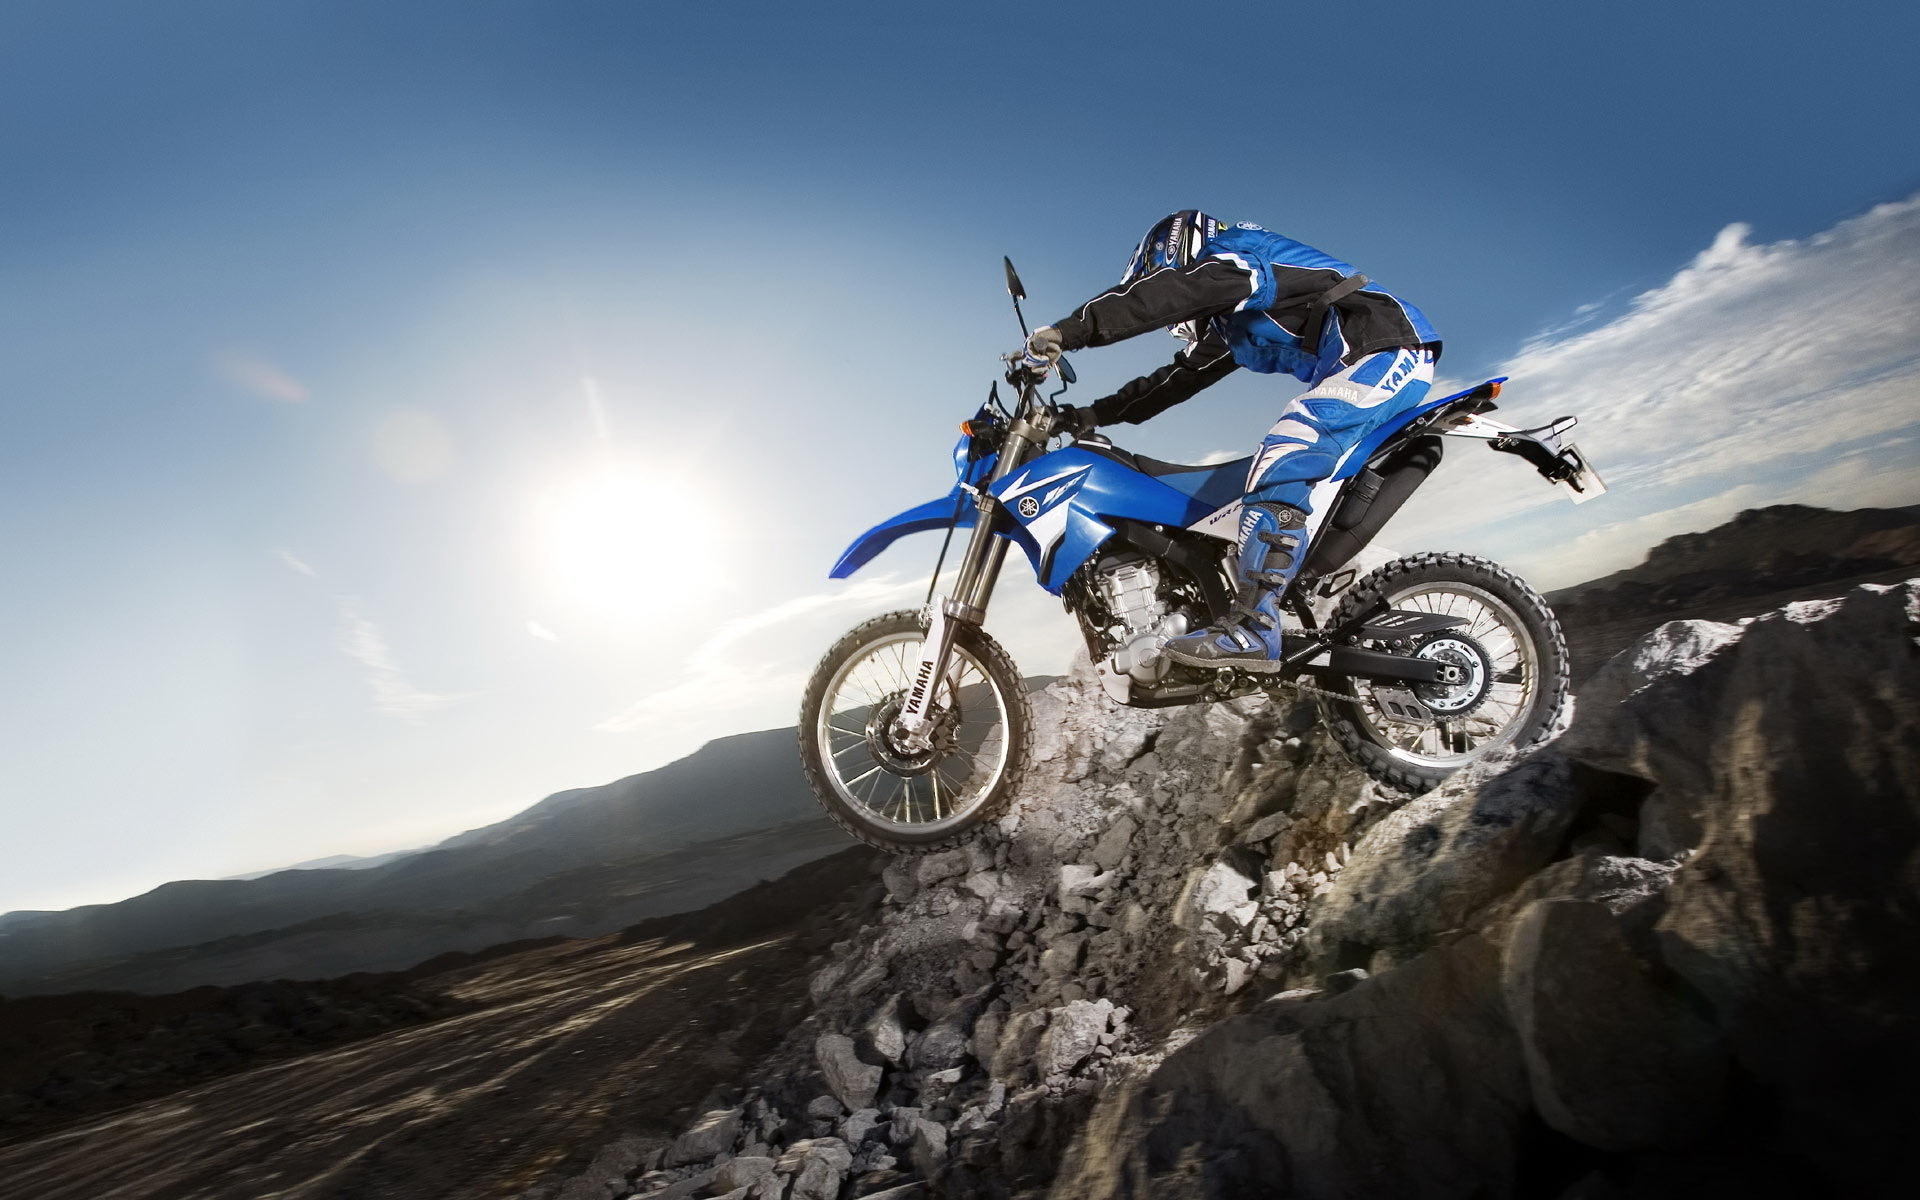 YAMAHA MOTOCROSS BIKE BLUE NEW GIANT ART PRINT POSTER PICTURE WALL X1440